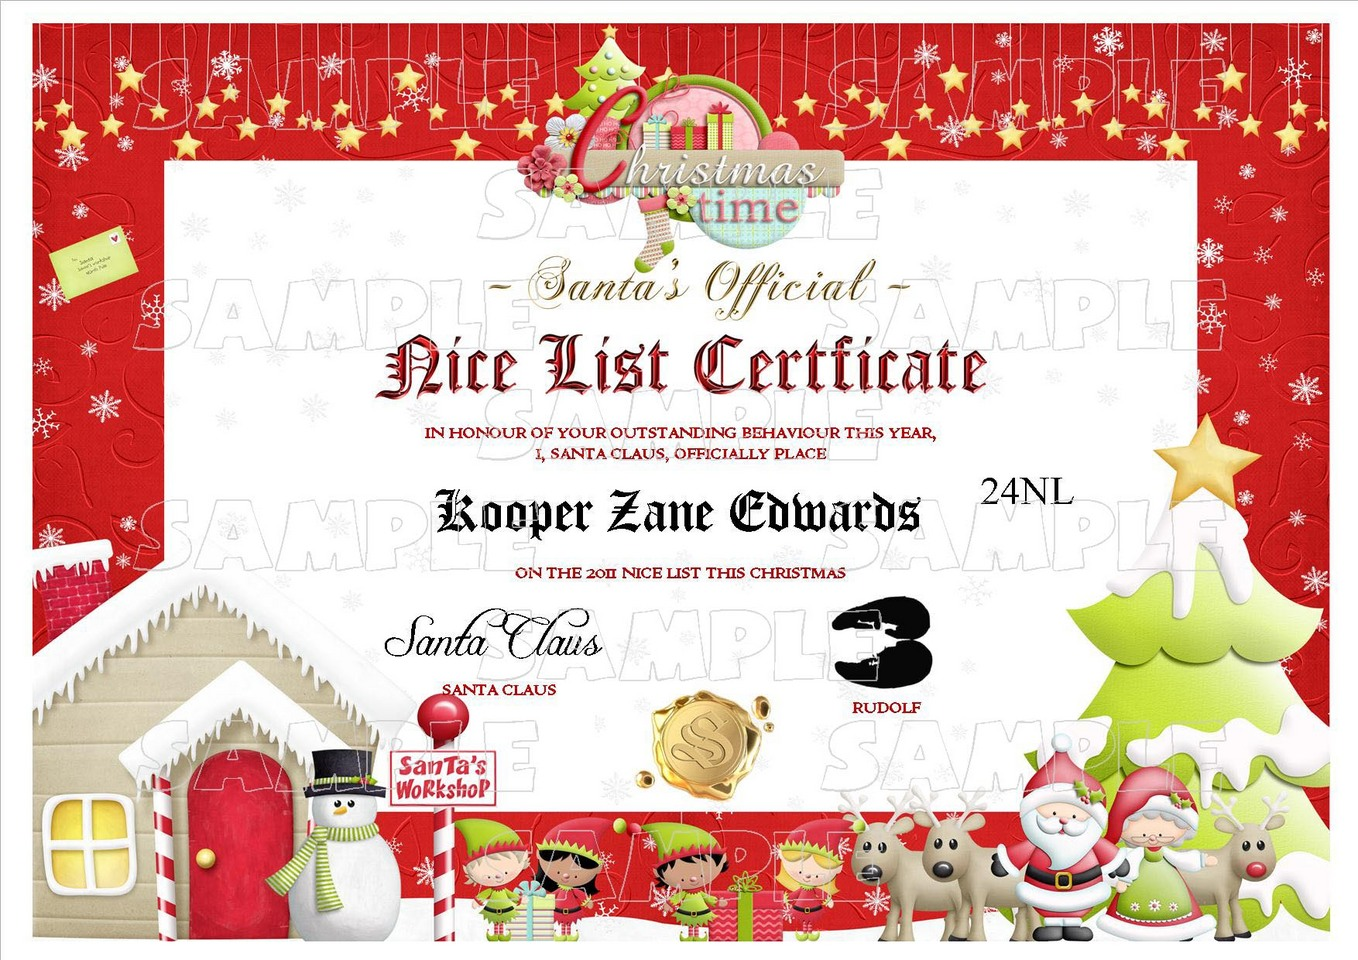 ... Santa Letter - Good/Nice List Certificate North Pole Postage Stamp